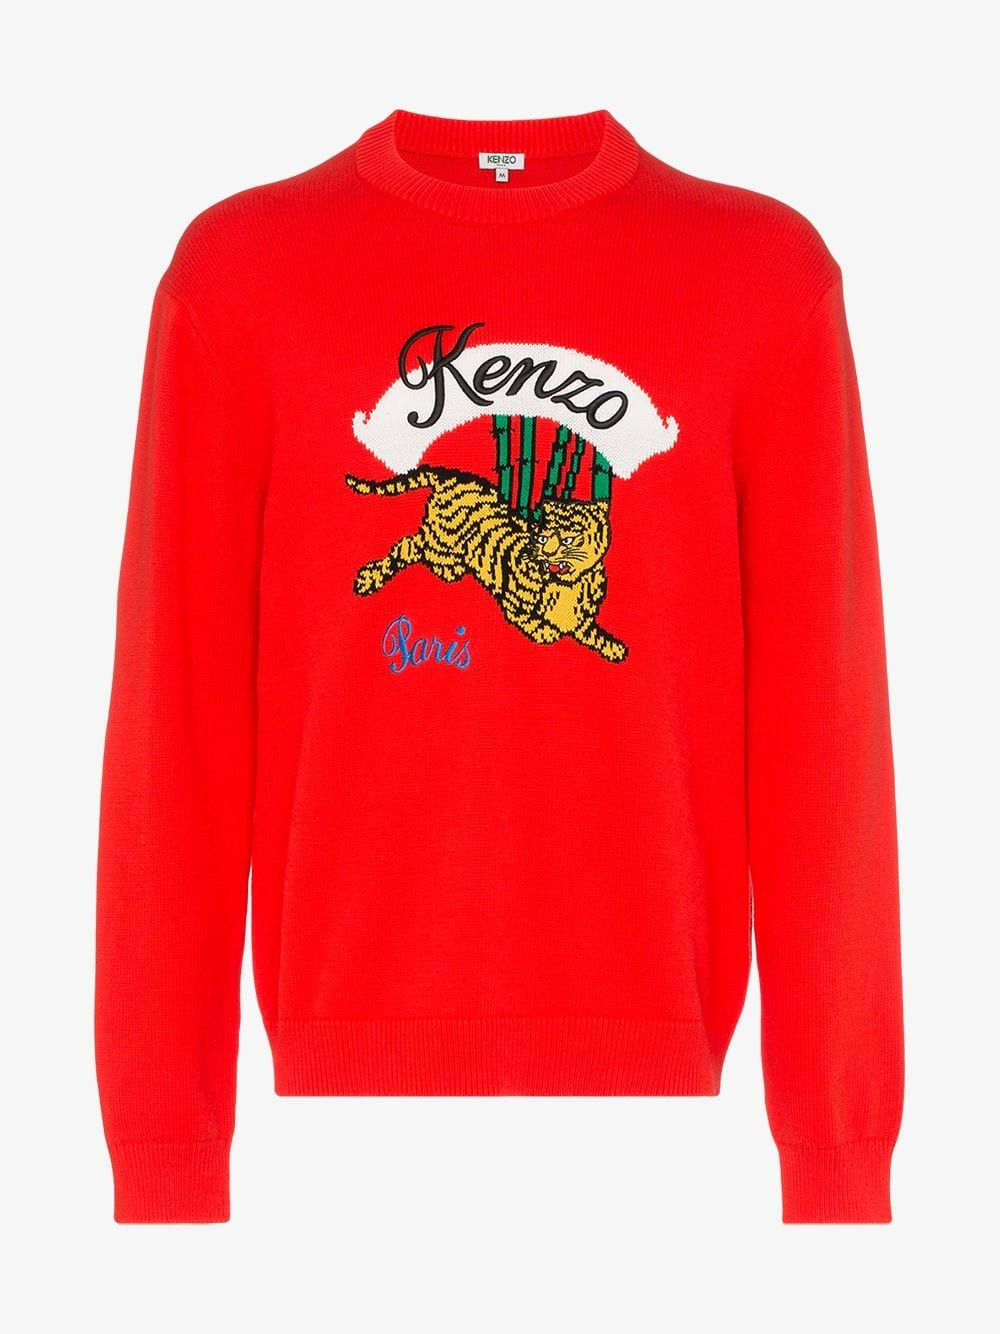 ShopKenzo cotton blend hoodie with